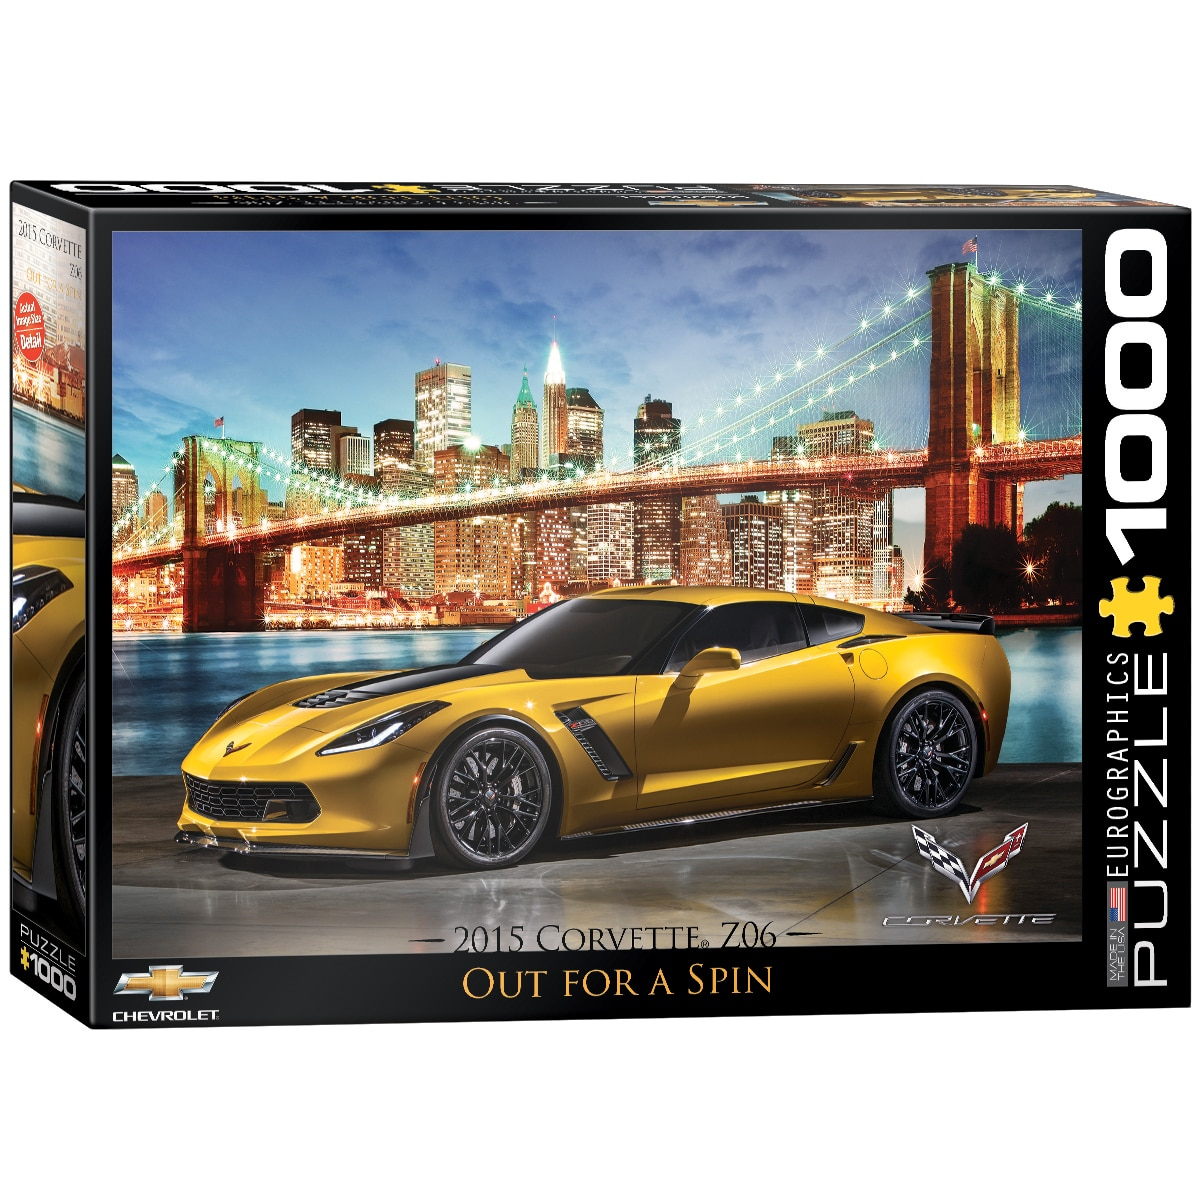 2015 Chevrolet Corvette Z06: Out for a Spin - 1000pc Jigsaw Puzzle by Eurographics